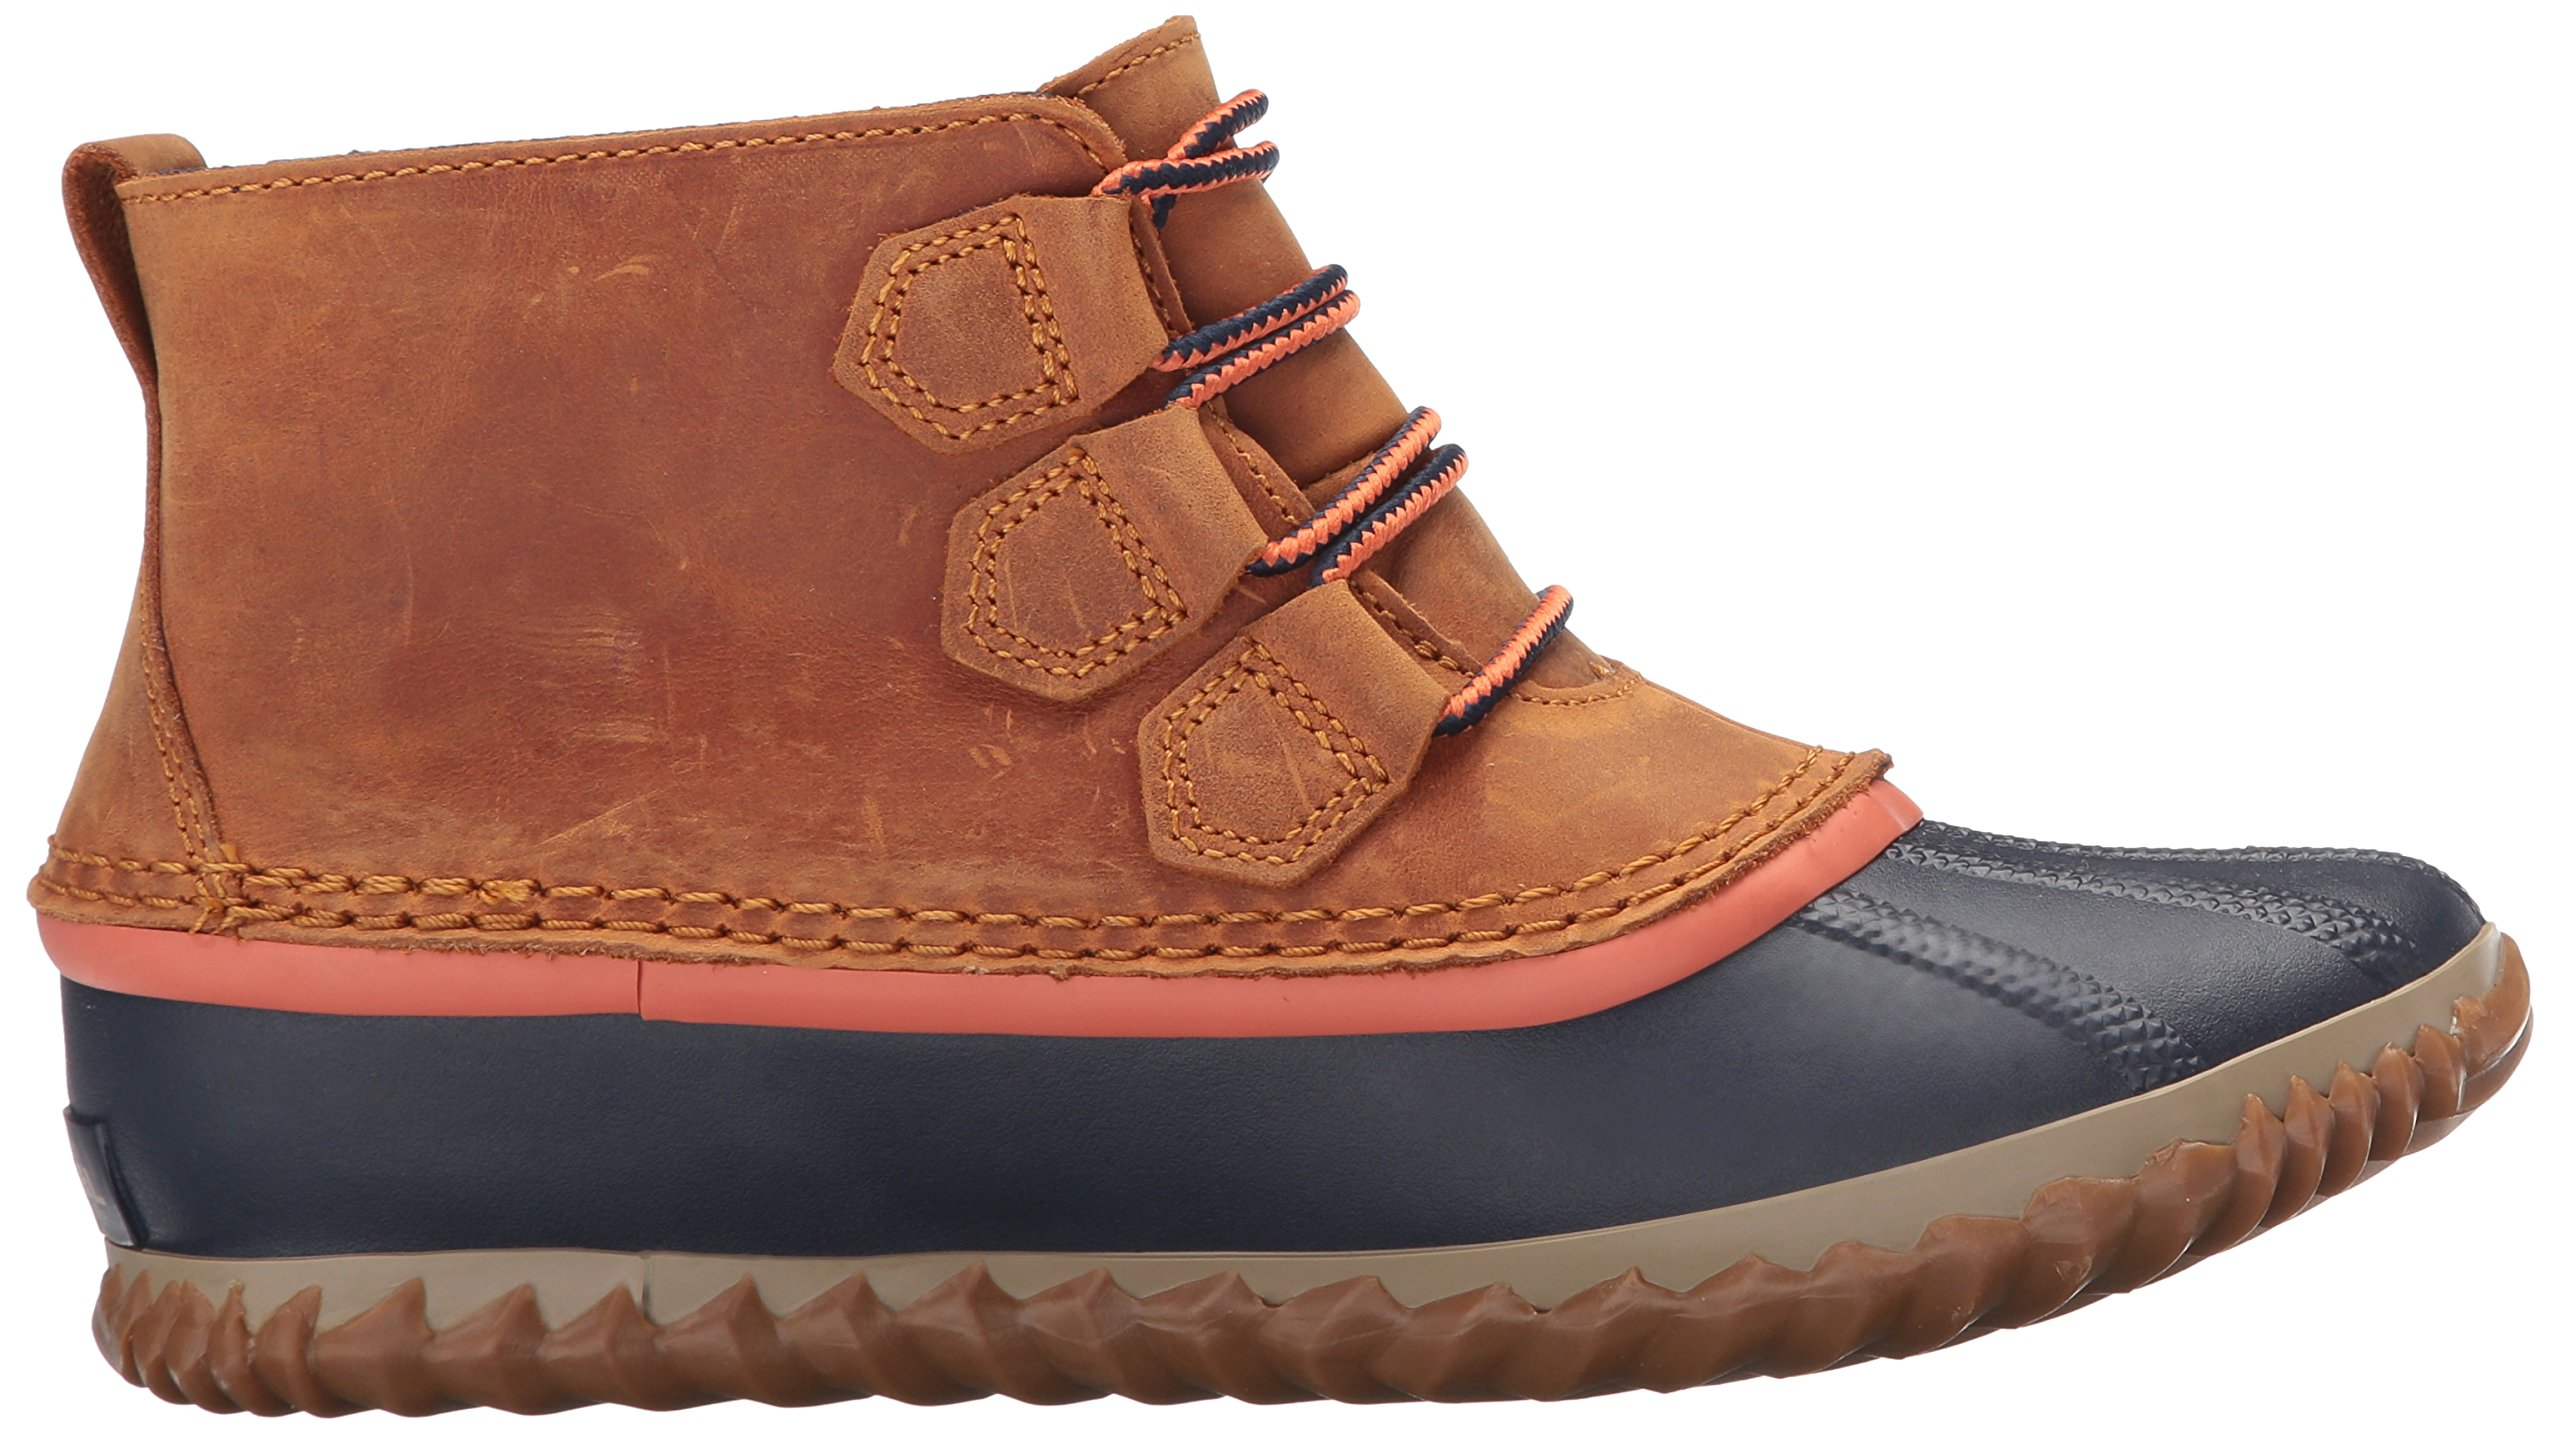 Sorel Women's Out N About Snow Boot, Brown, 6 B US by SOREL (Image #7)